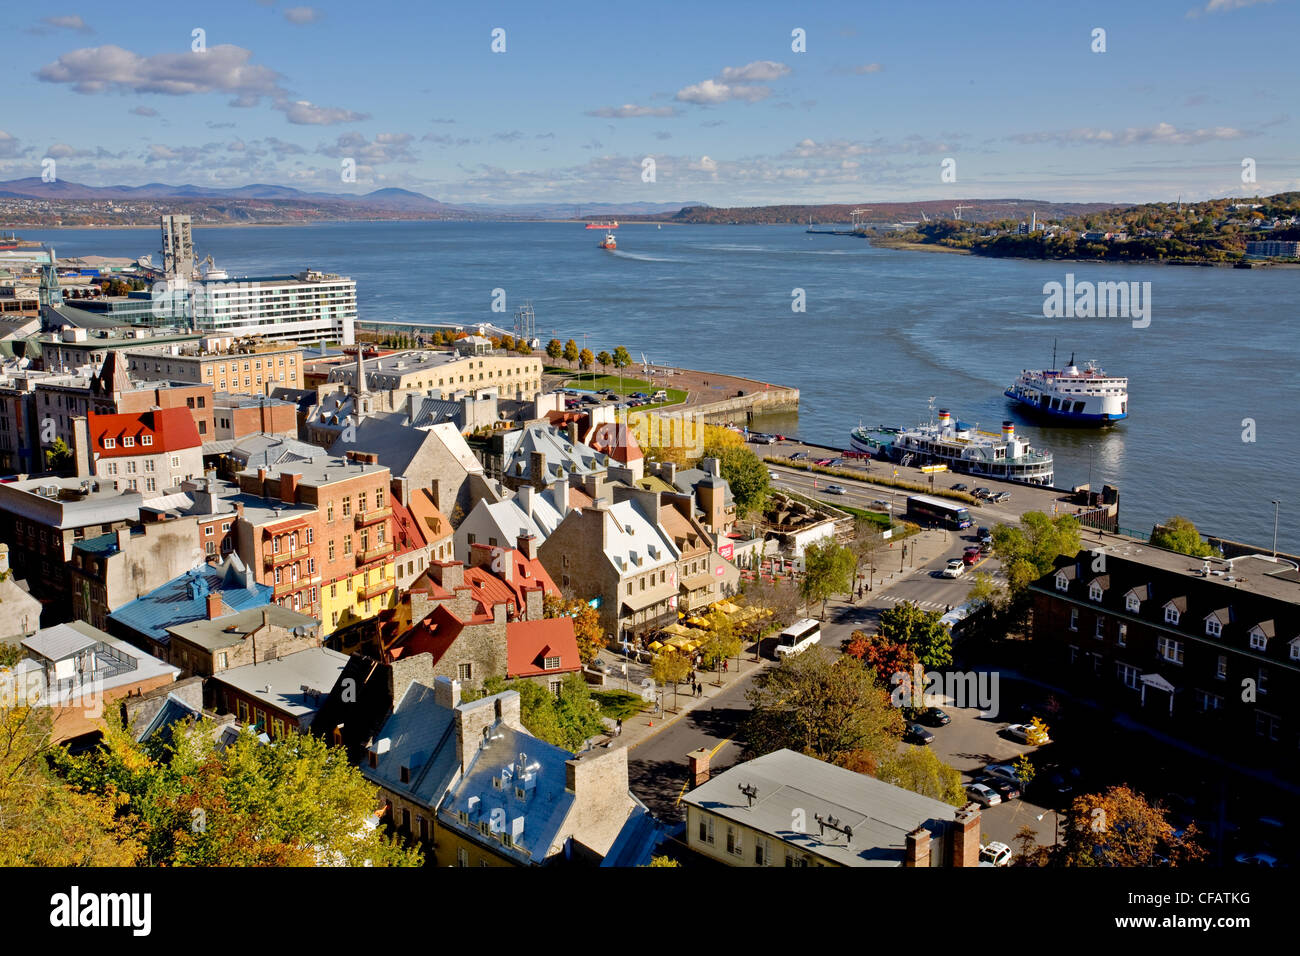 St. Lawrence River and Old Quebec City, Quebec, Canada - Stock Image